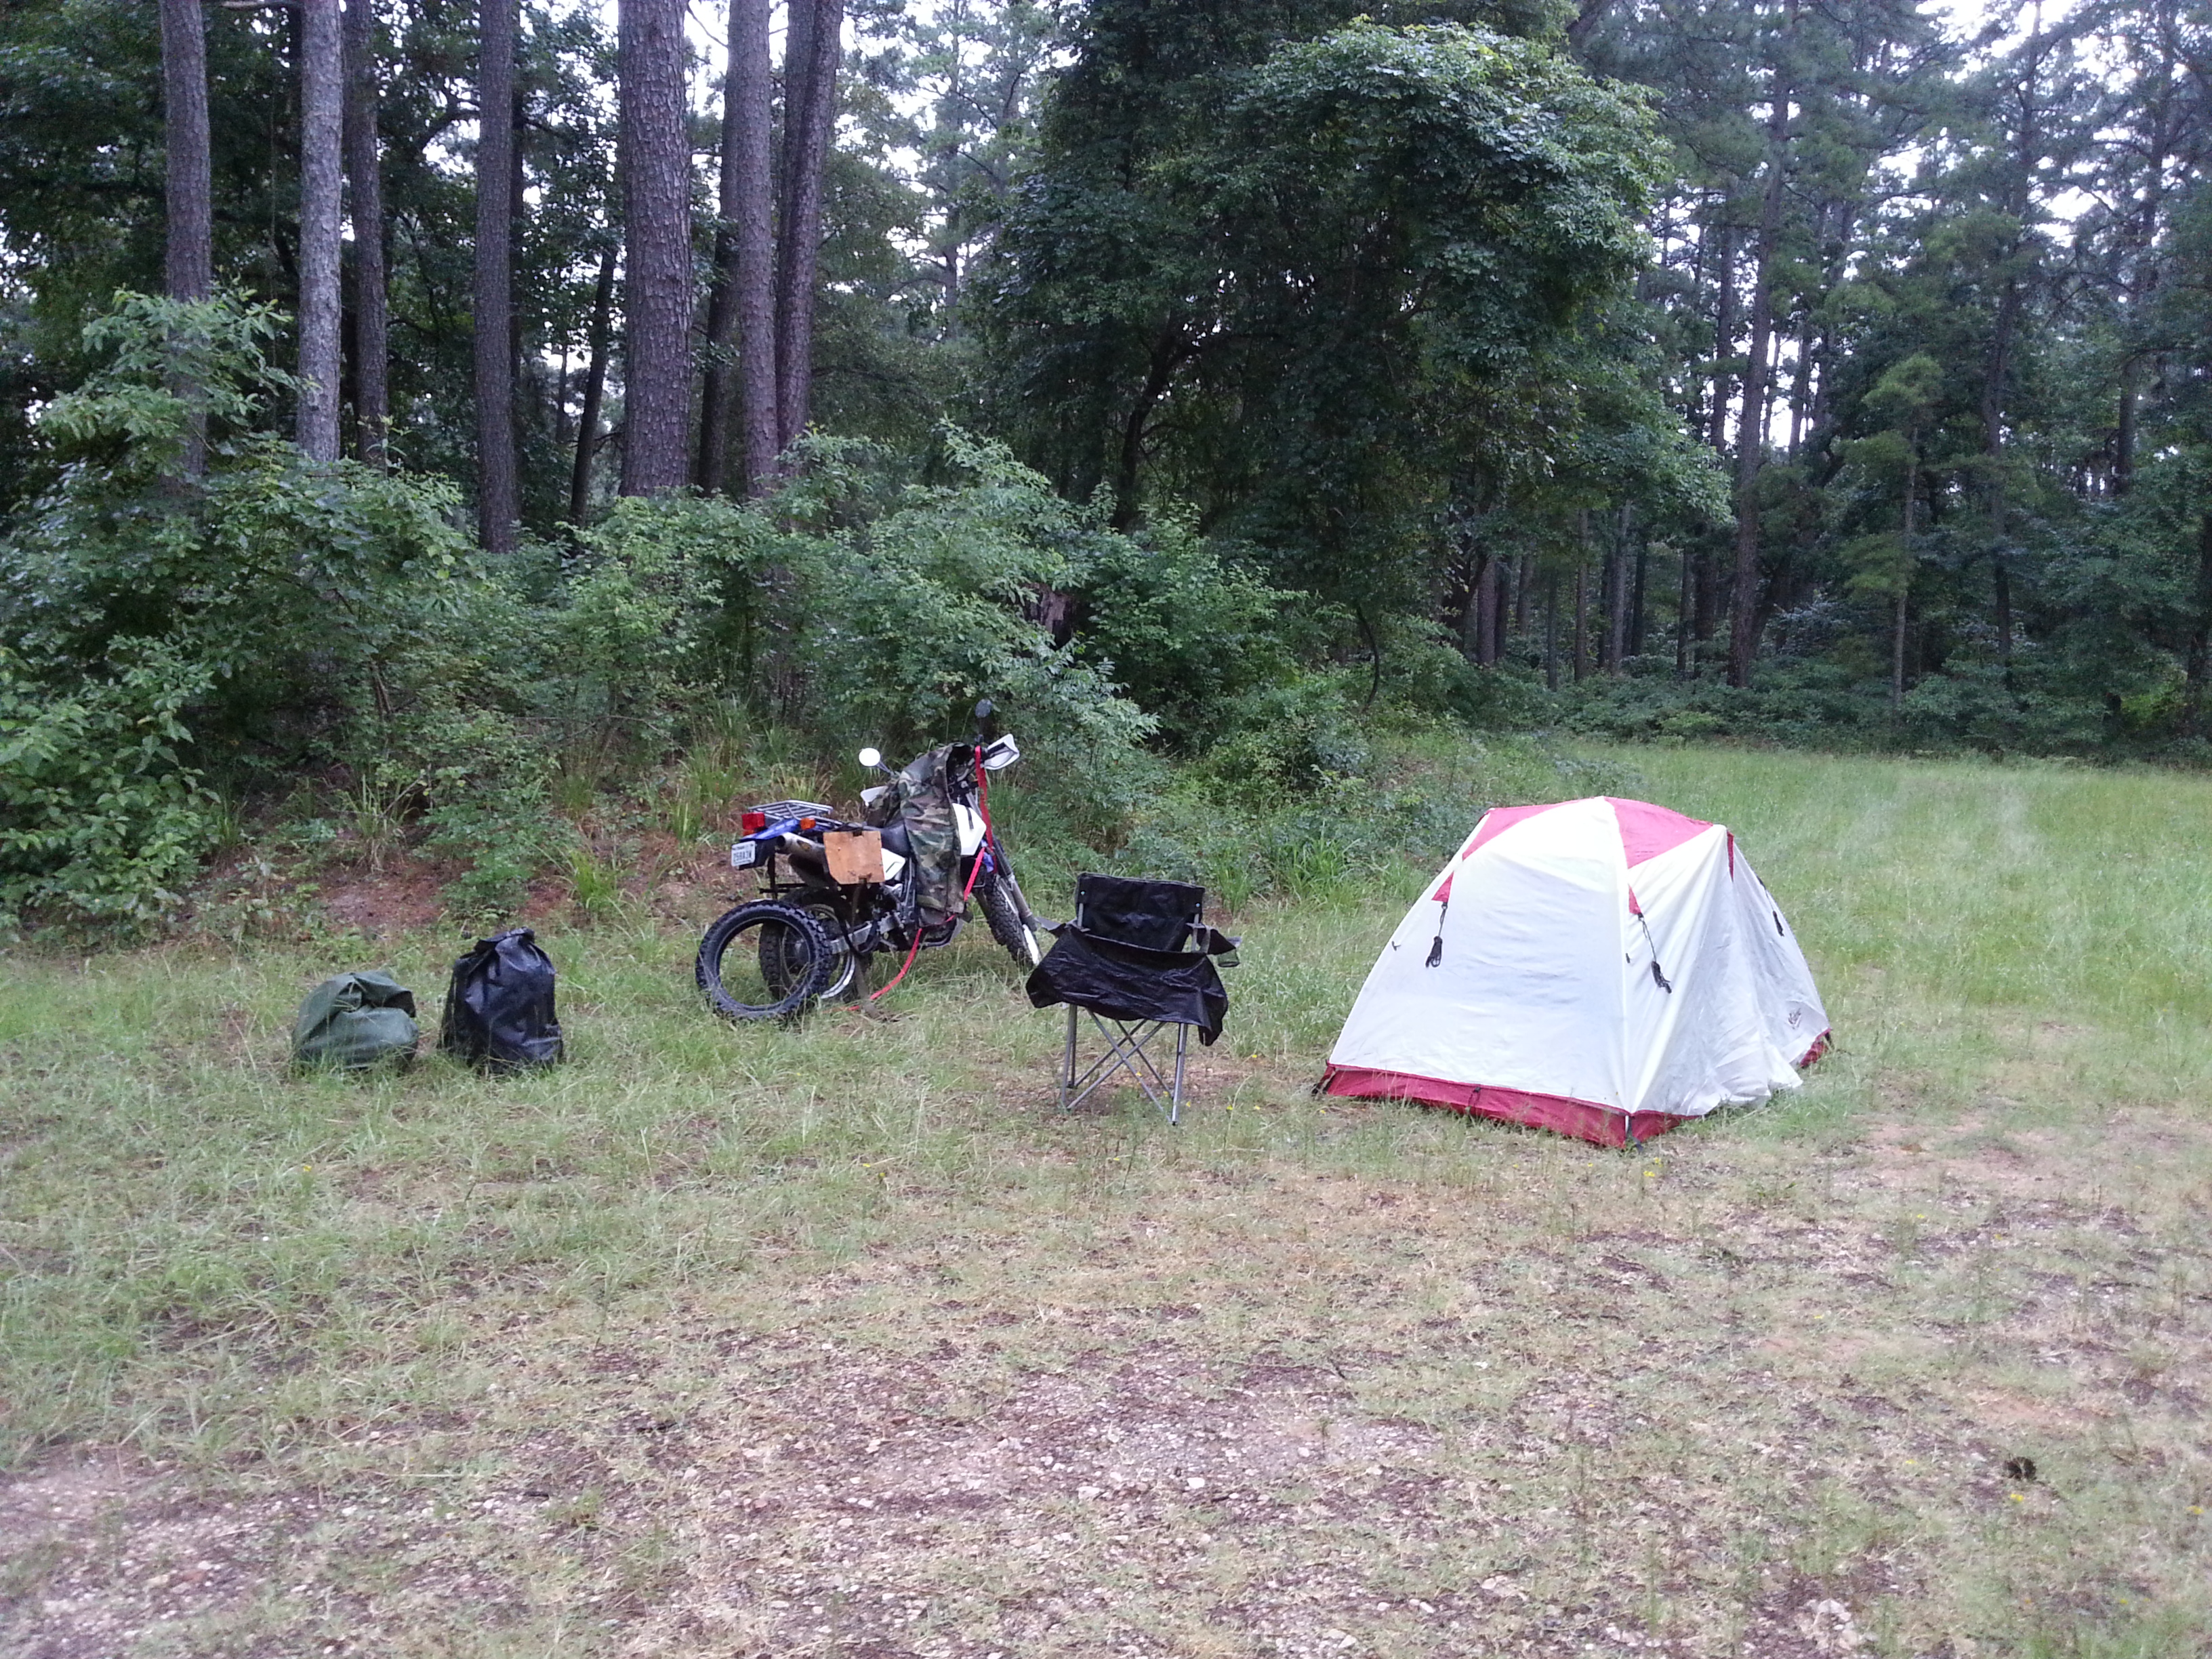 Campsite in the Davy Crockett National Forest (this is the morning after, I got there at night in the dark)